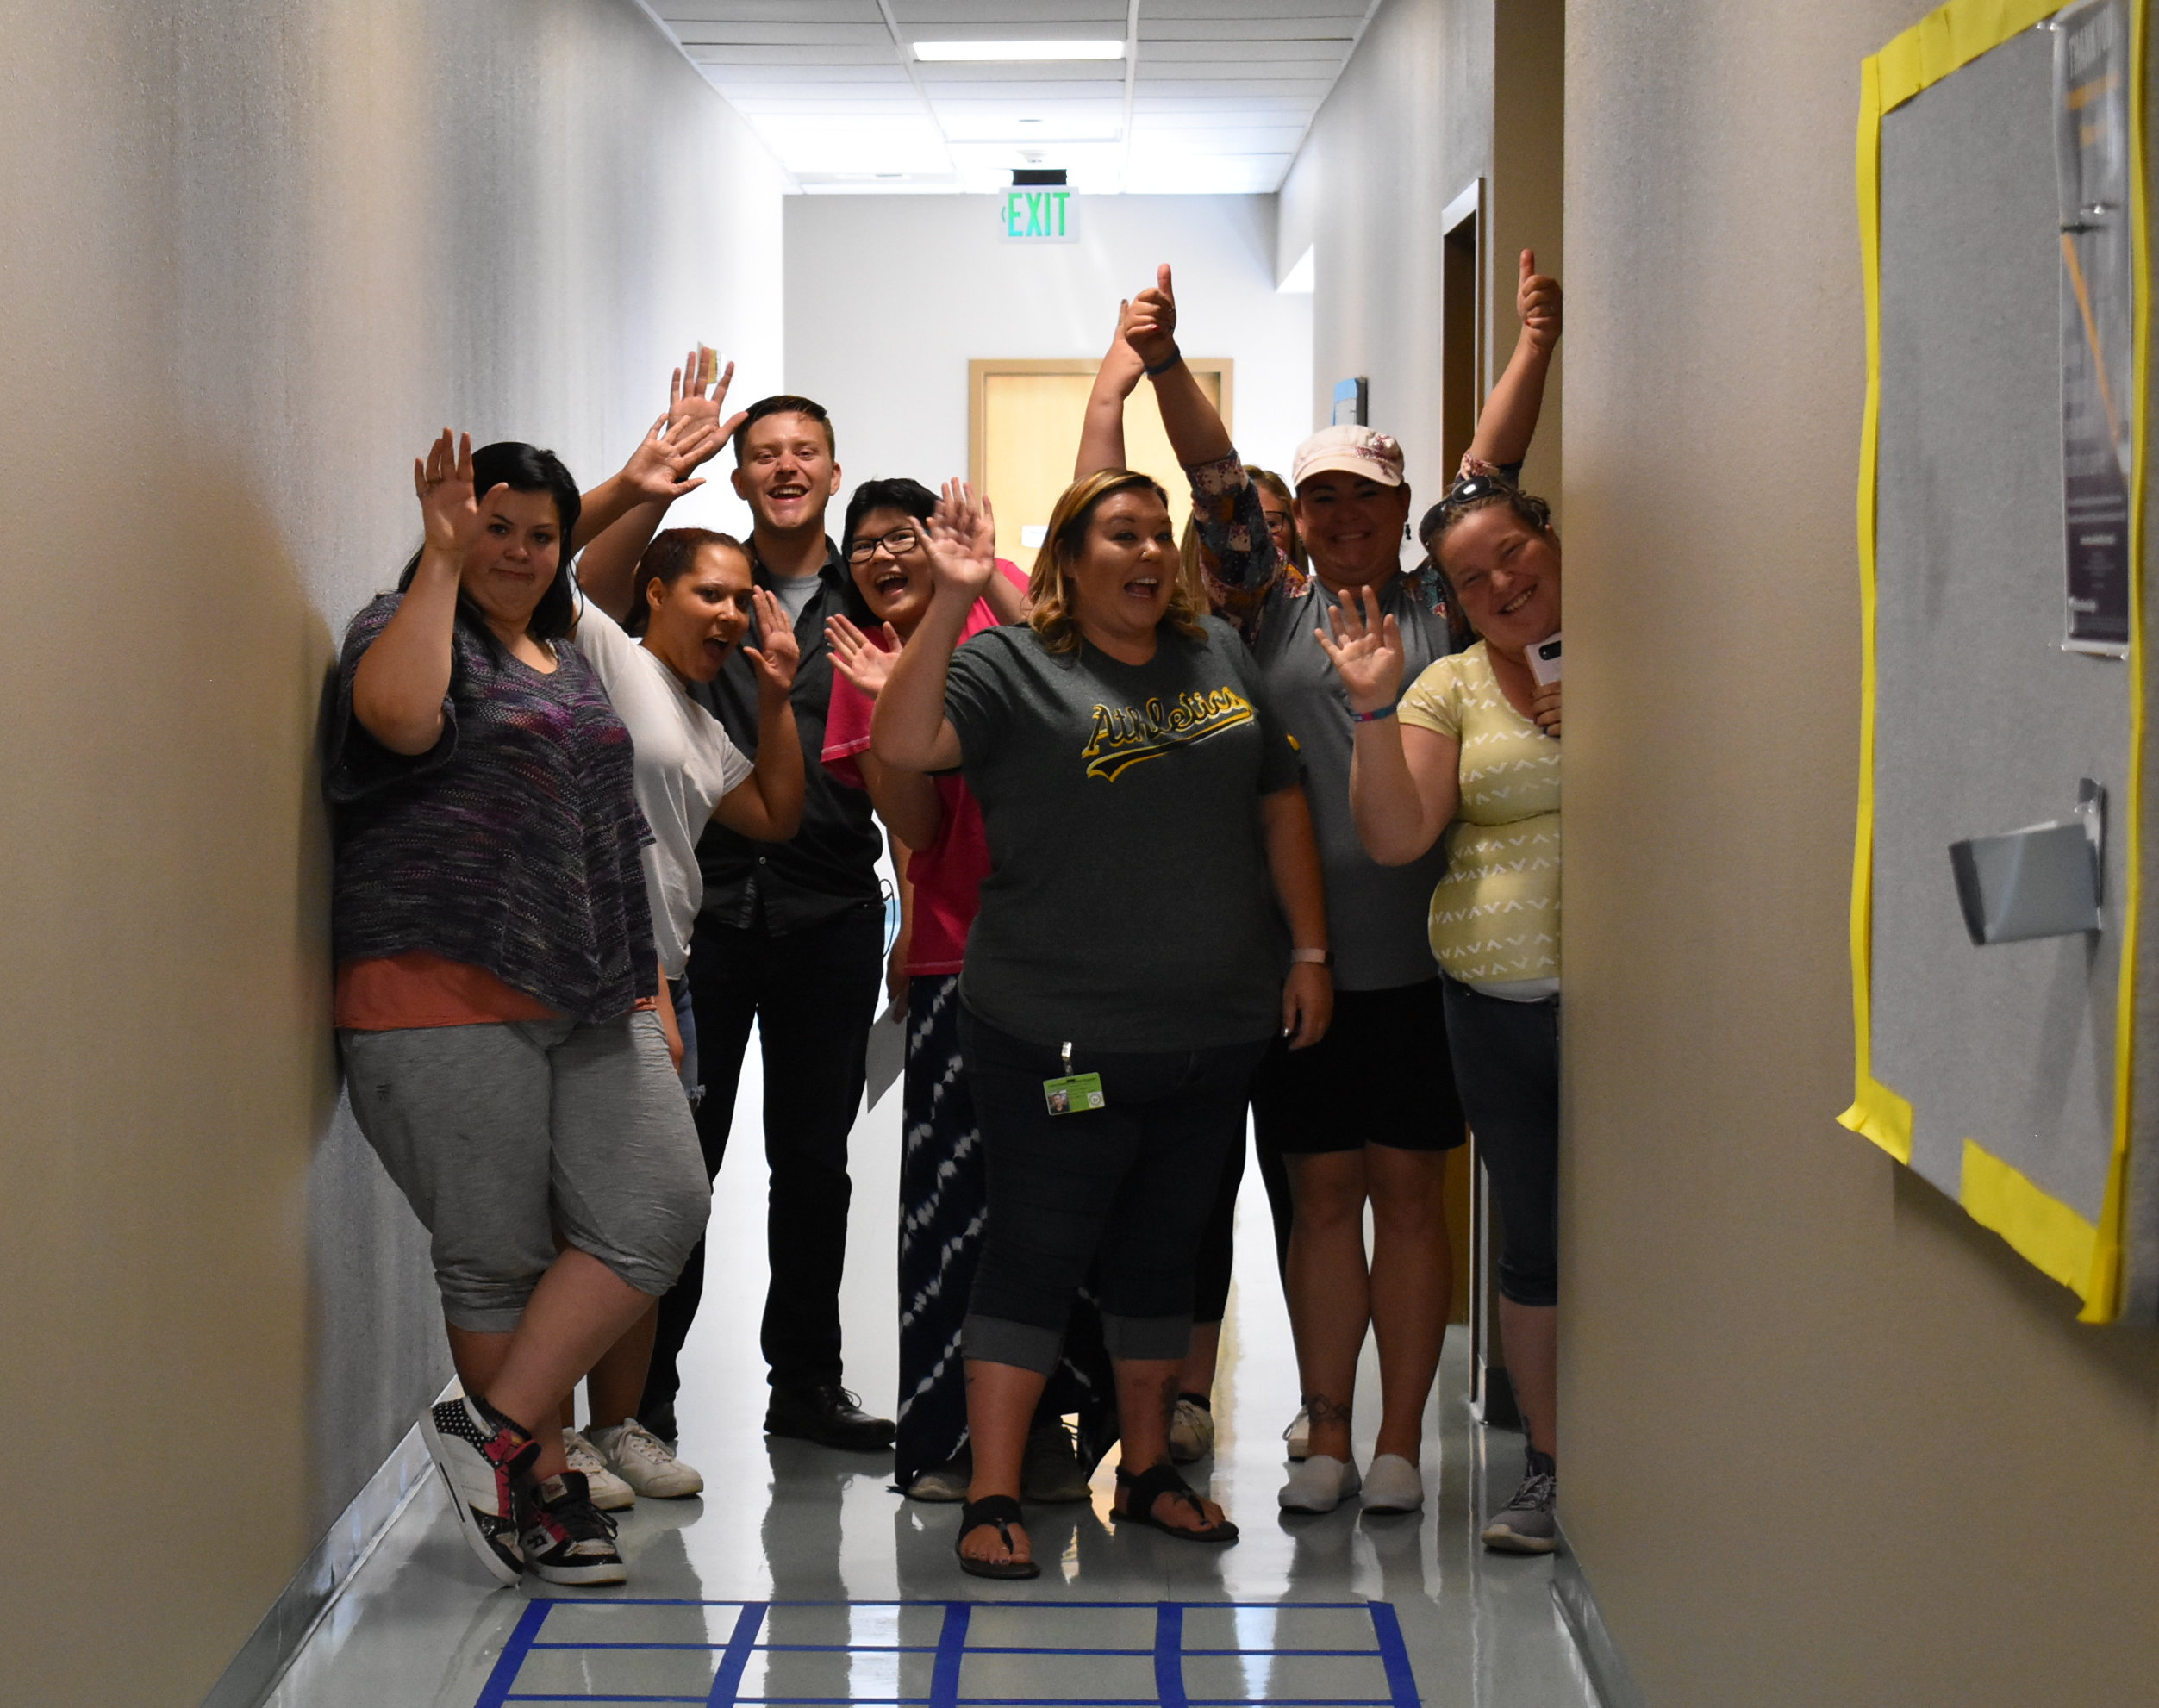 A group stands in a school hallway and waves to the camera.